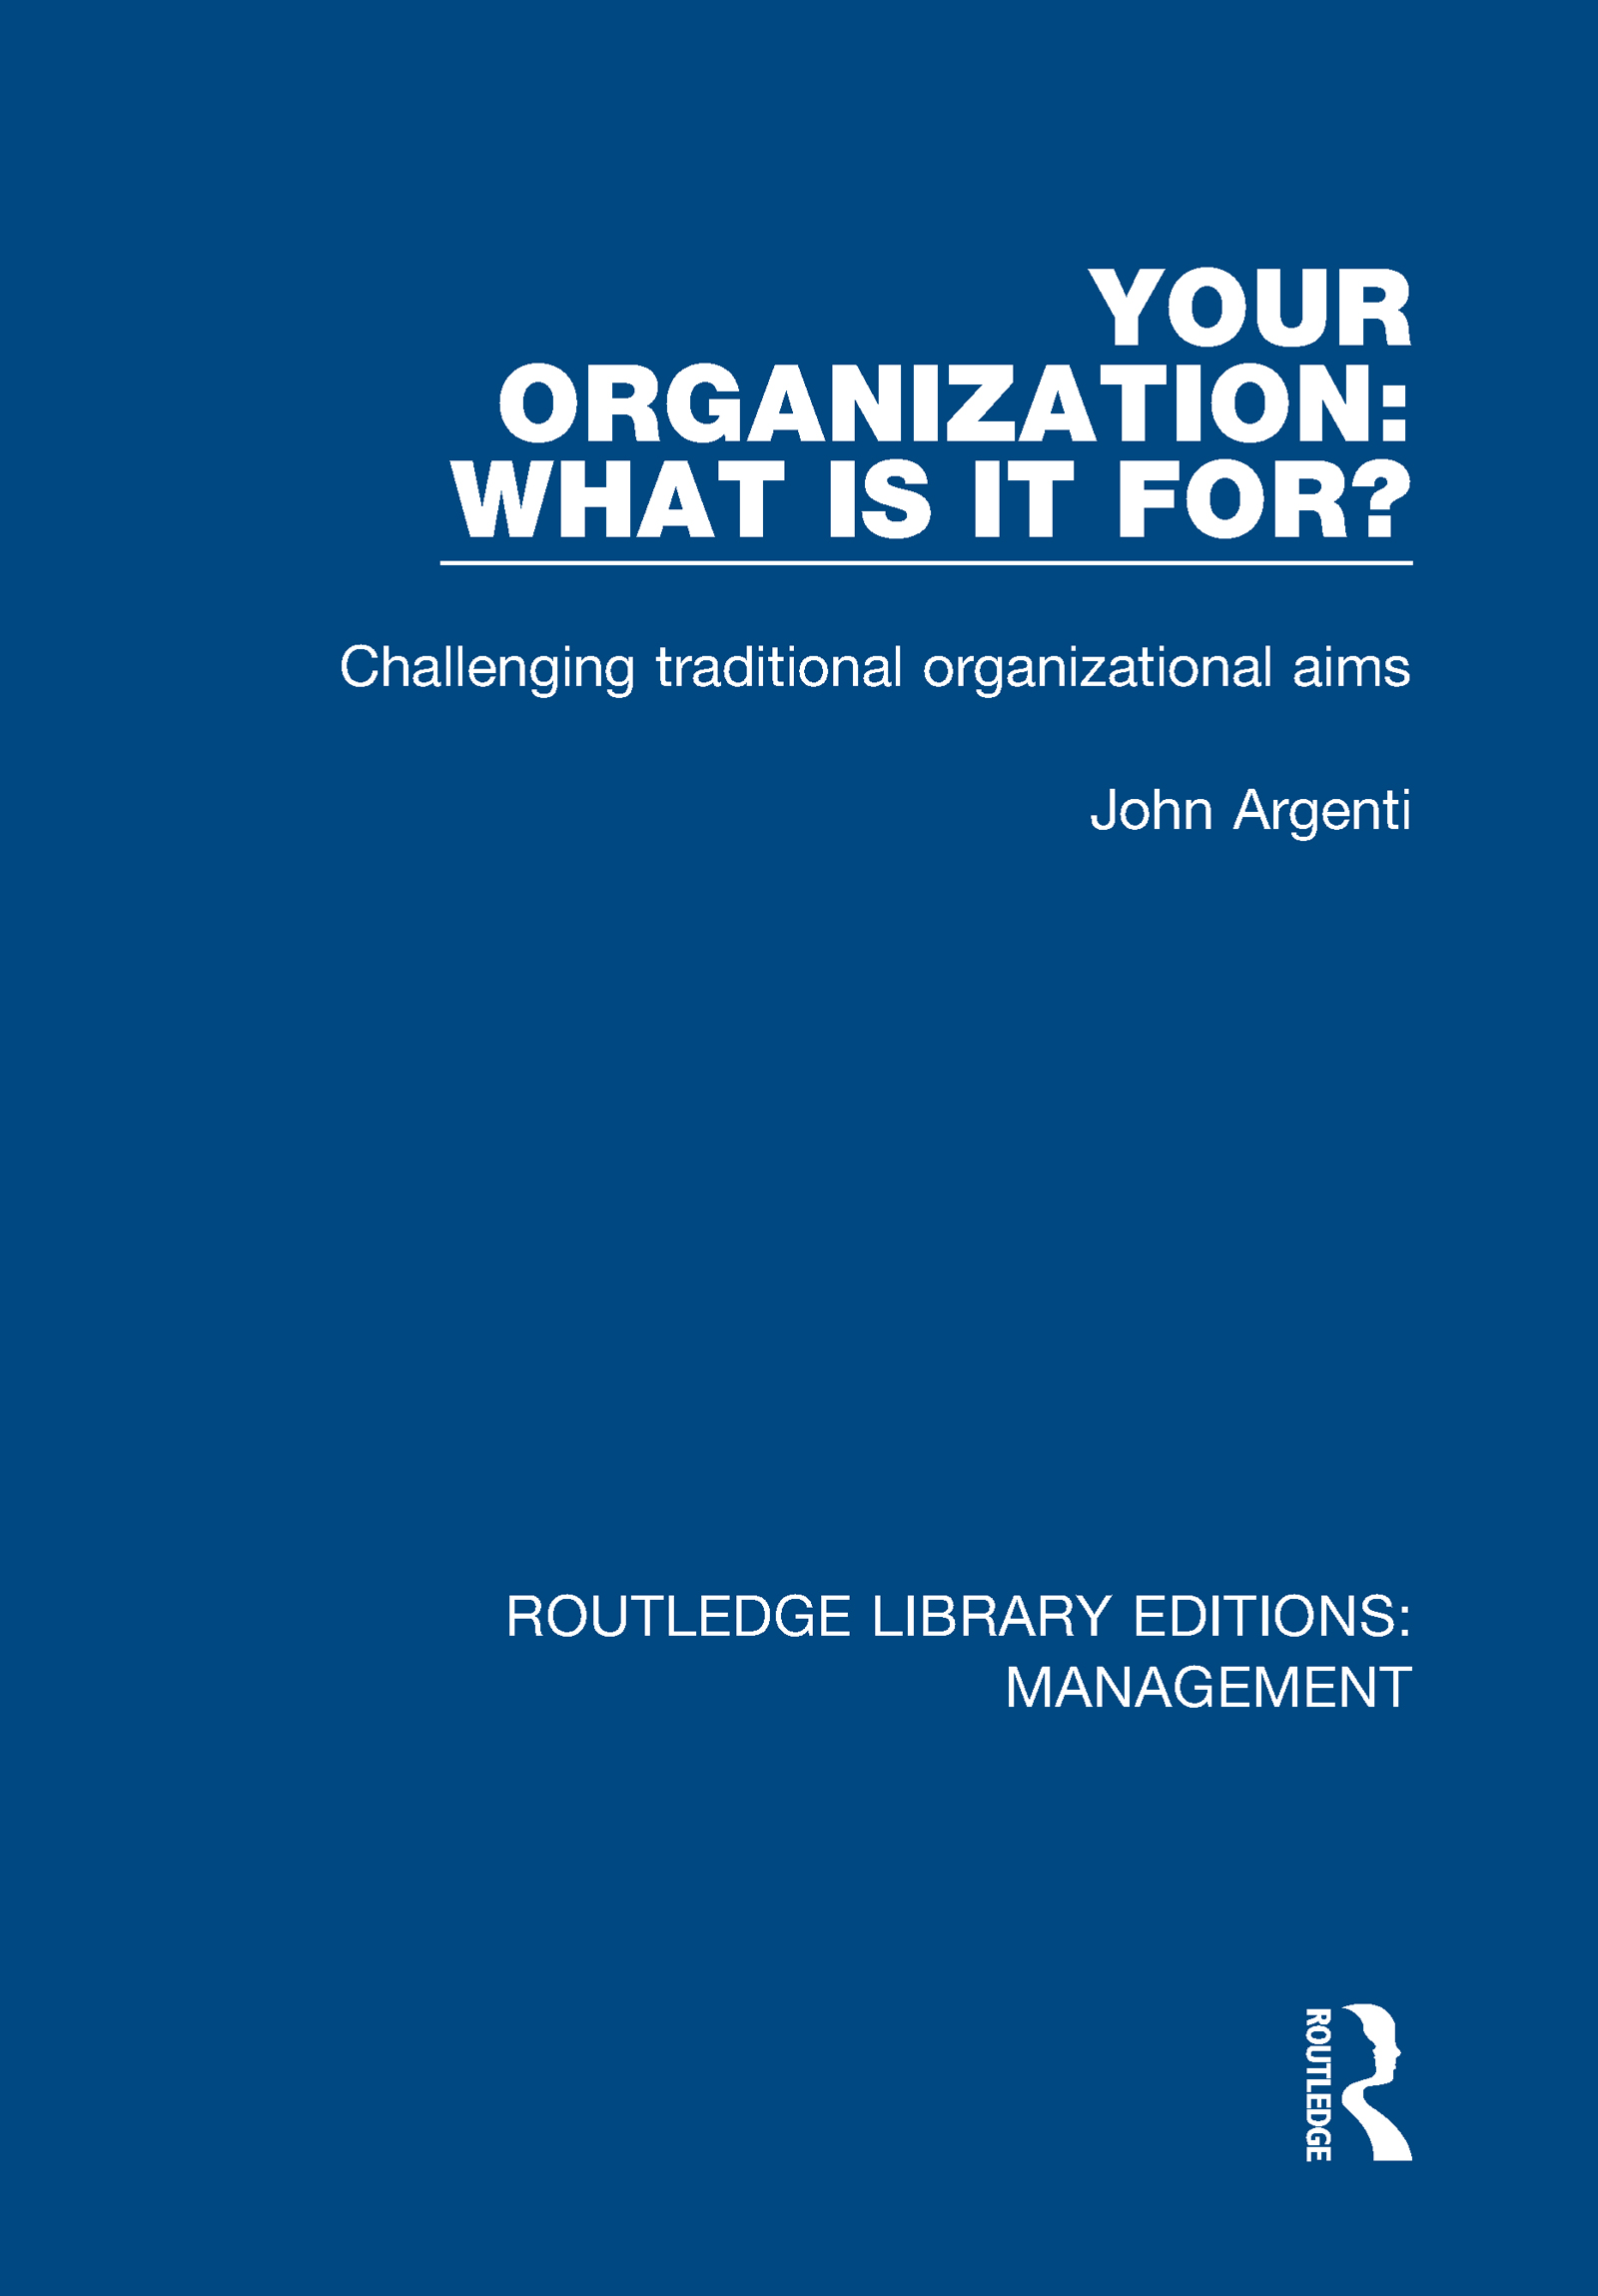 The management of organizations